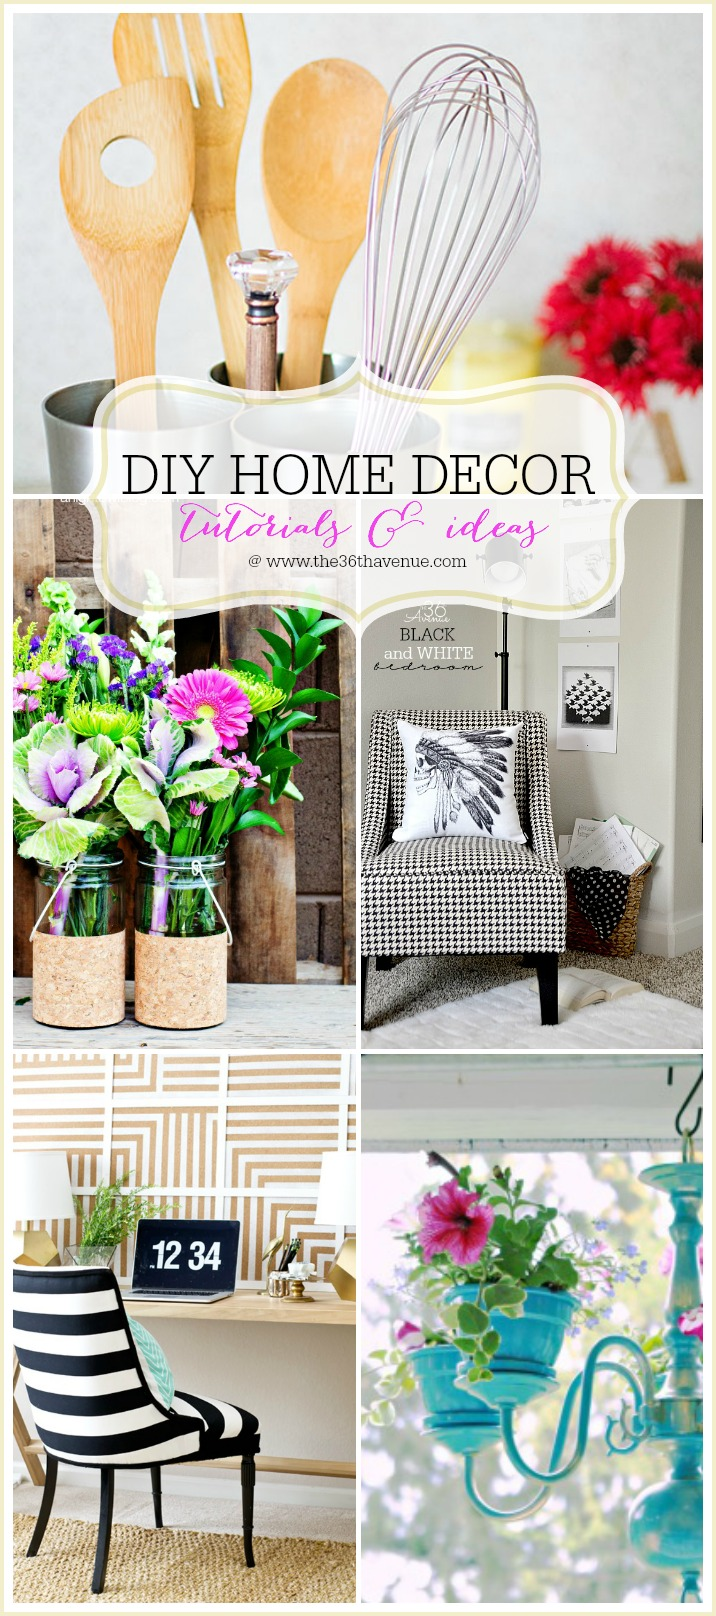 The 36th avenue home decor diy projects the 36th avenue Home decor ideas pictures photos